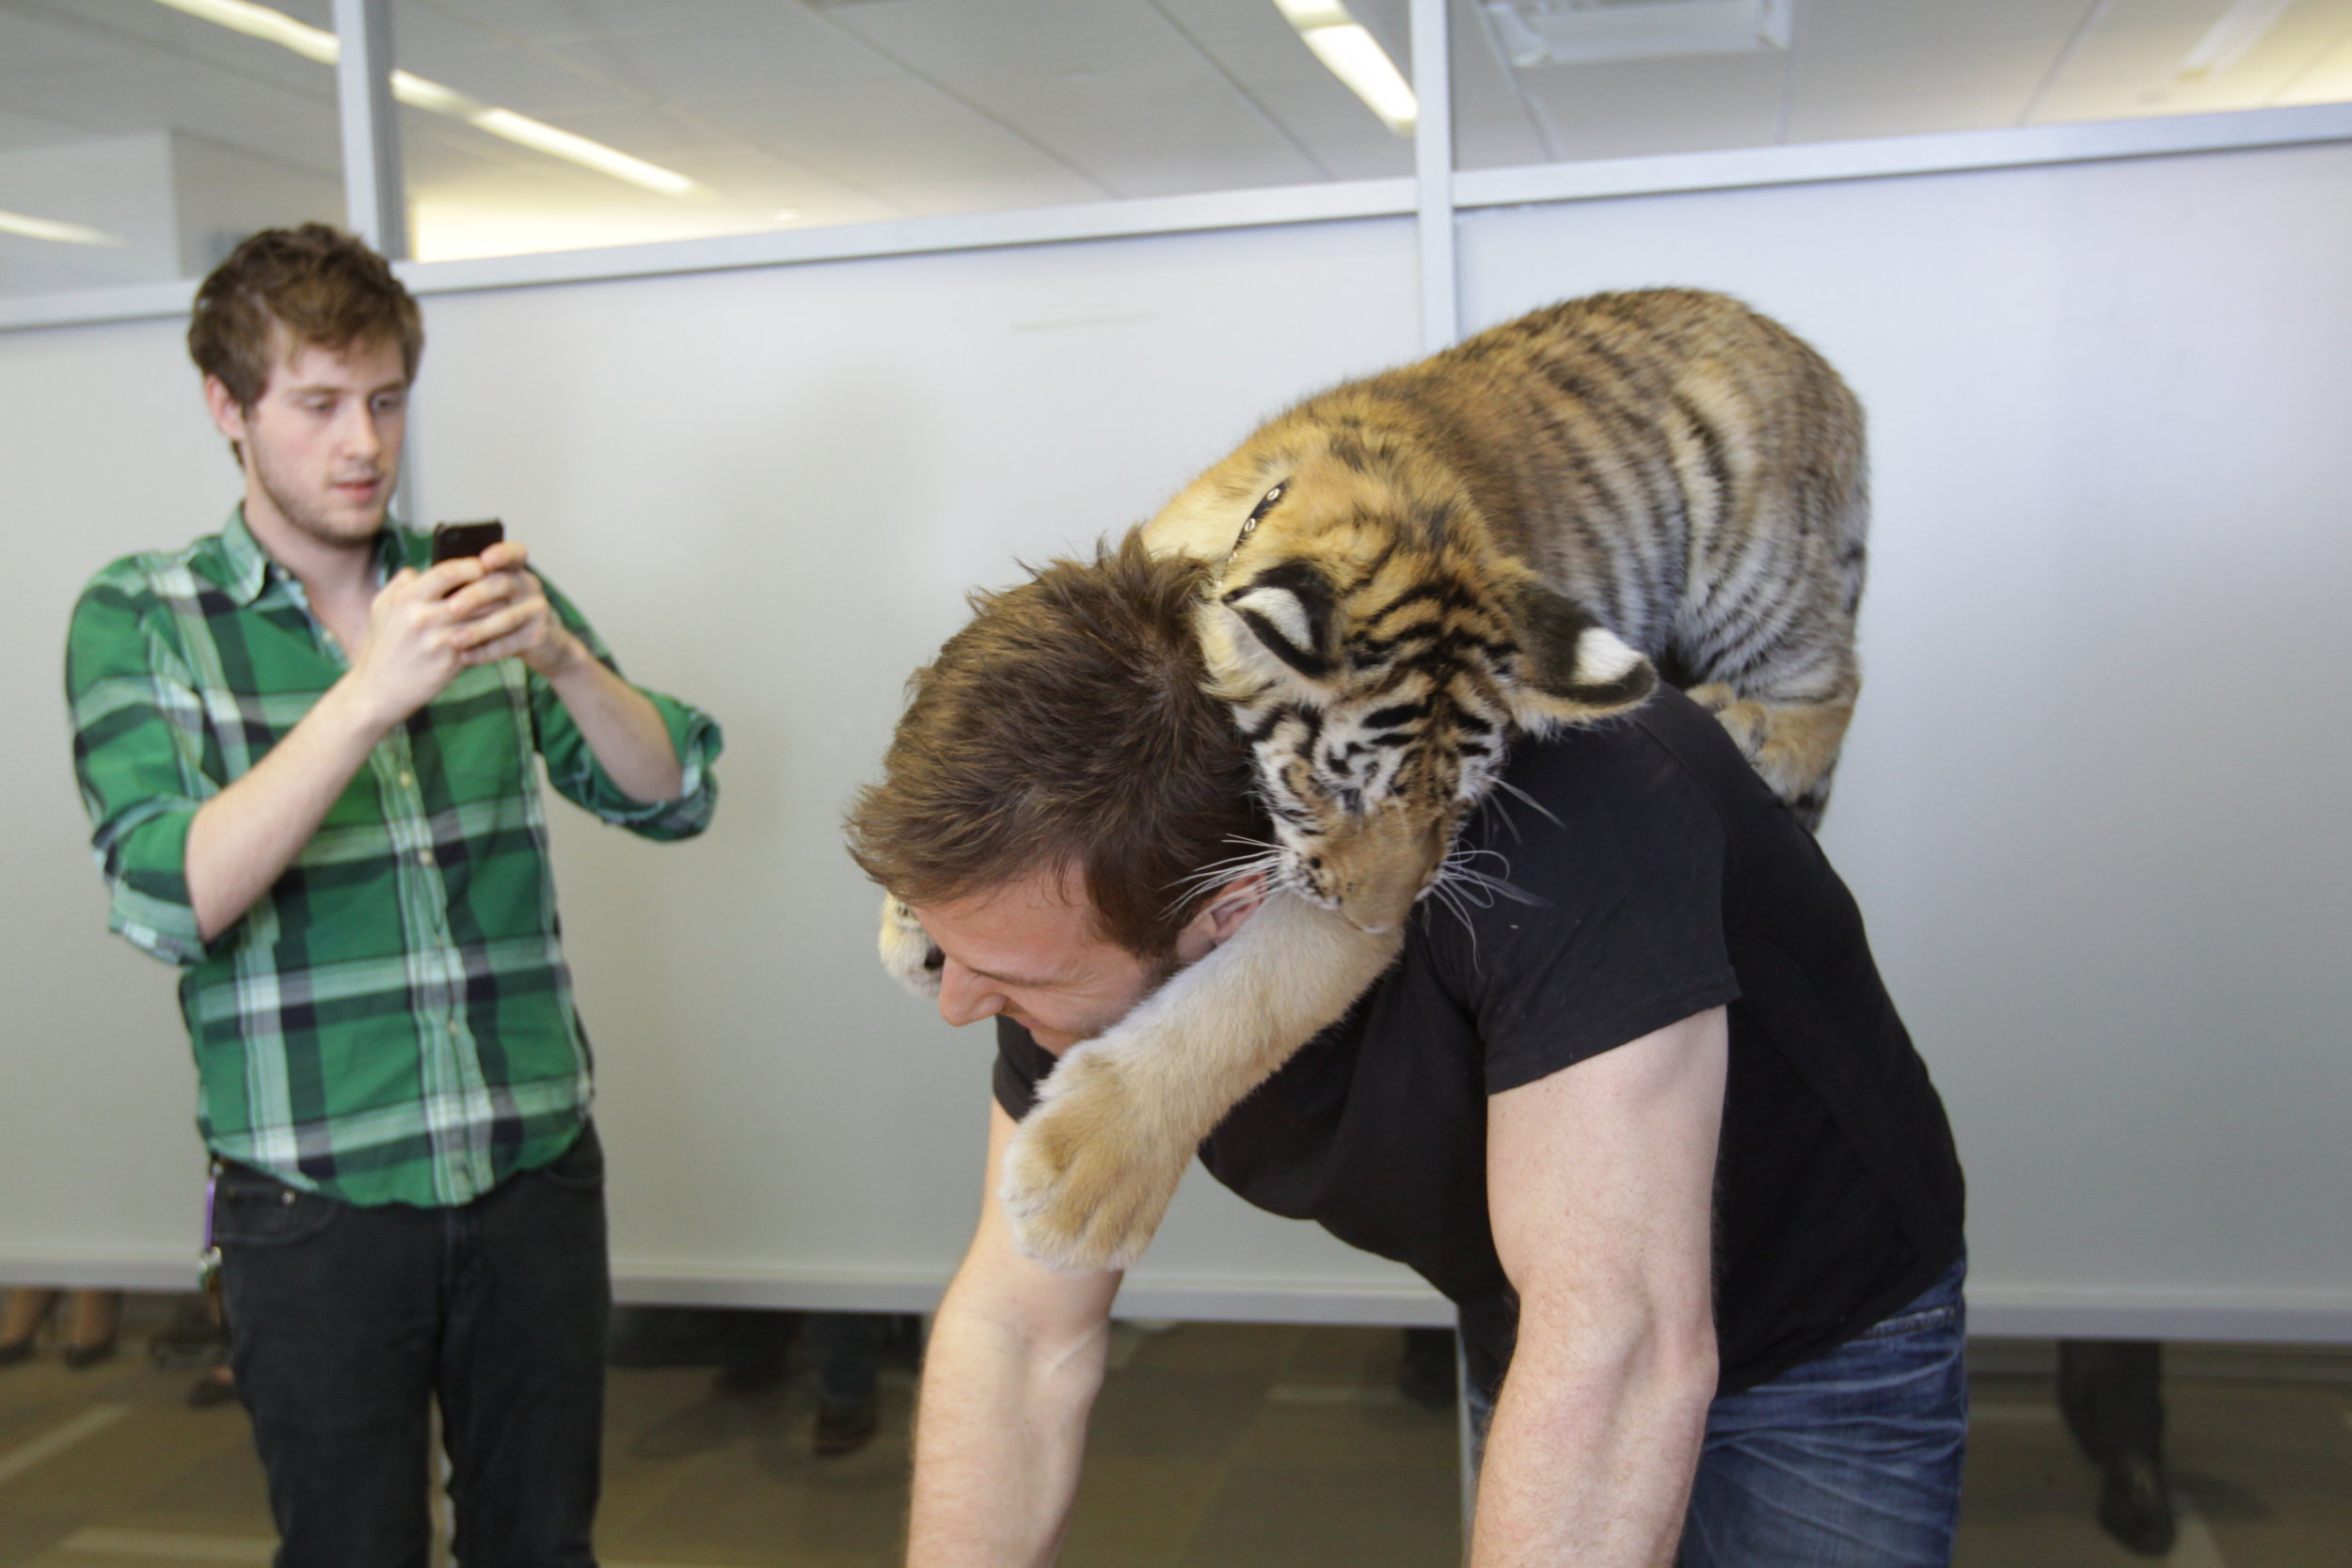 Our friends at Animal Planet invited us to come meet a baby tiger. I photographed the meeting for a post.